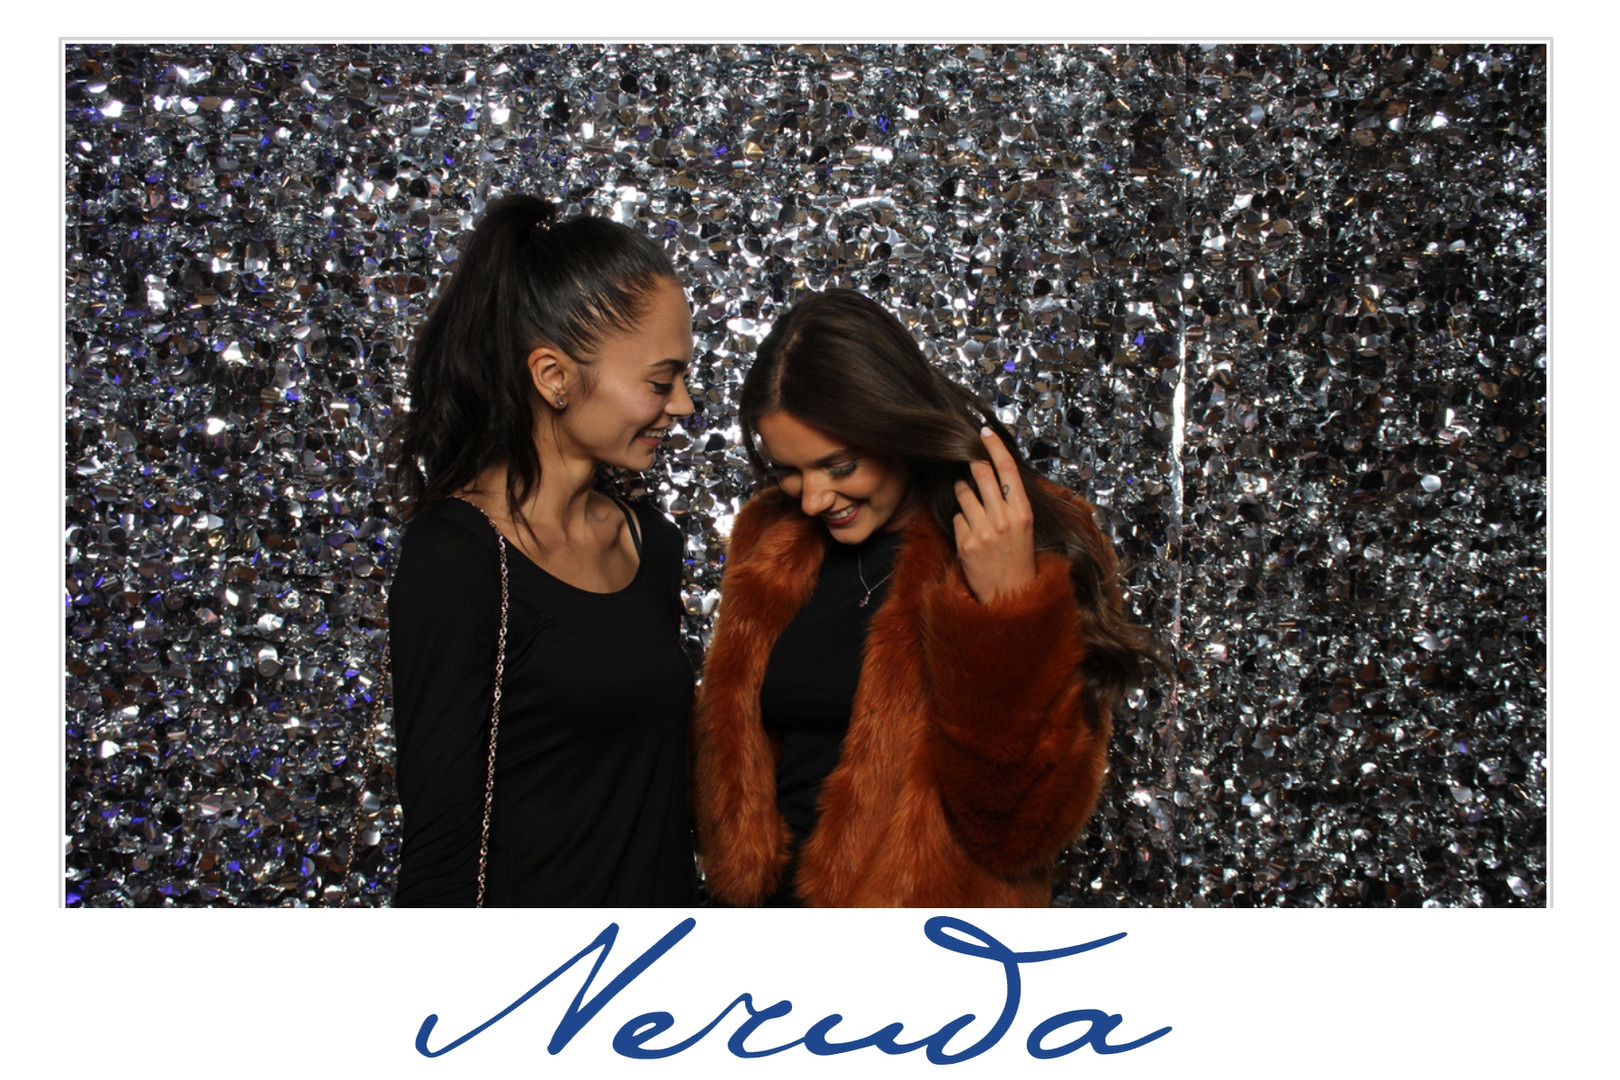 Gala Event, Photo Booth in Toronto